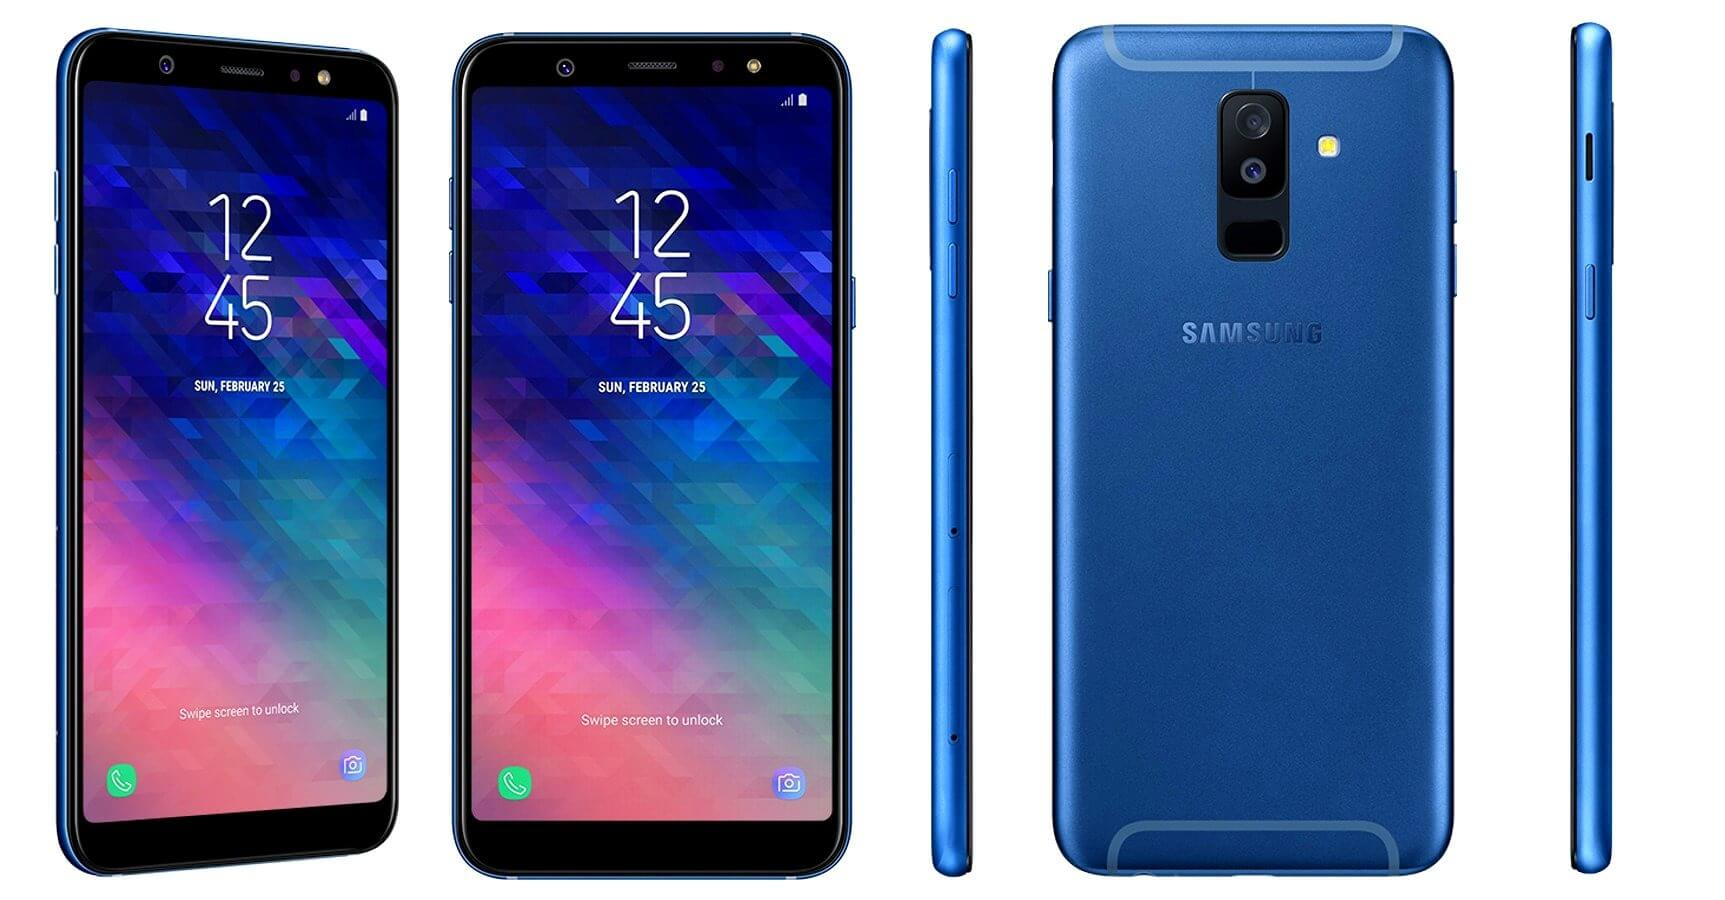 Samsung Galaxy A6 & Galaxy A6 Plus - Design, Specifications & Pricing 9